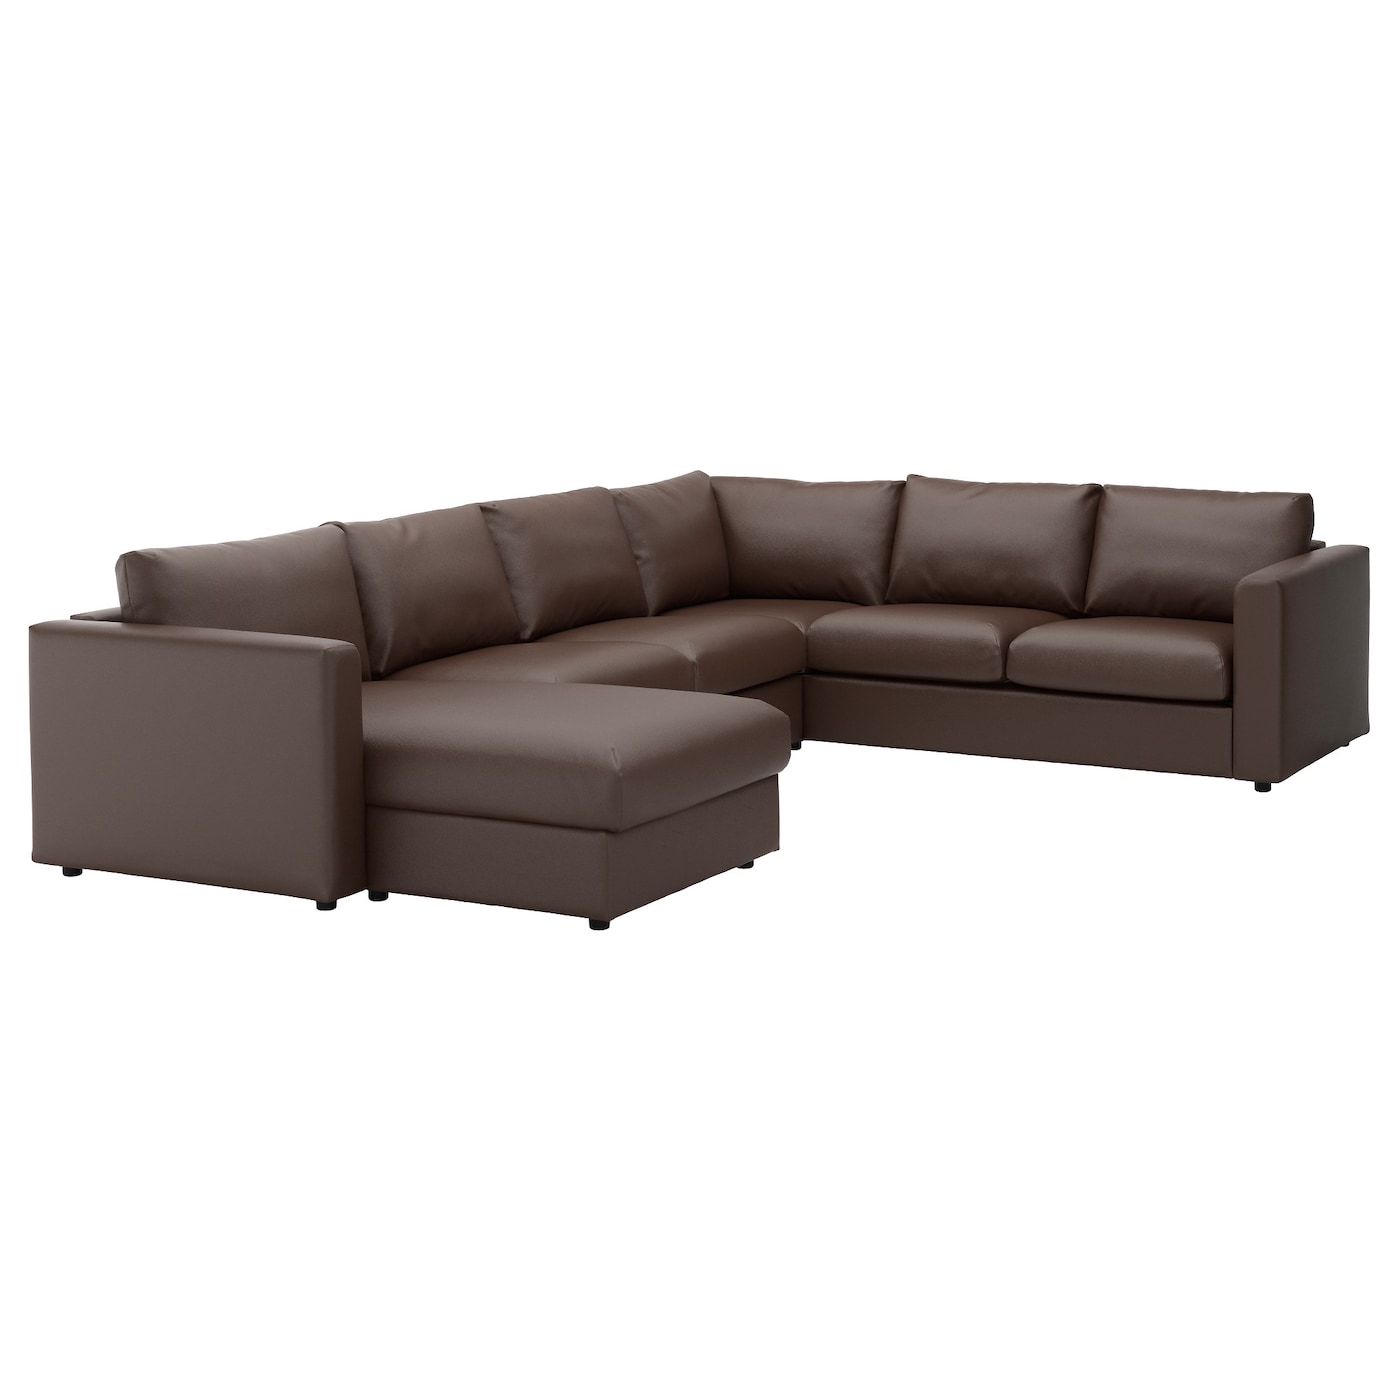 Vimle Corner Sofa 5 Seat With Chaise Longue Farsta Dark Brown Ikea